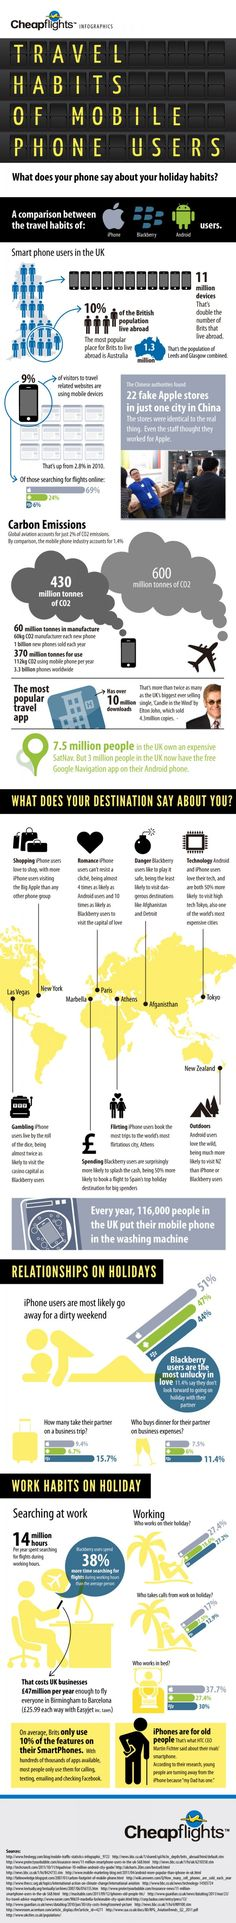 Travel Trends of Mobile Phone Users.